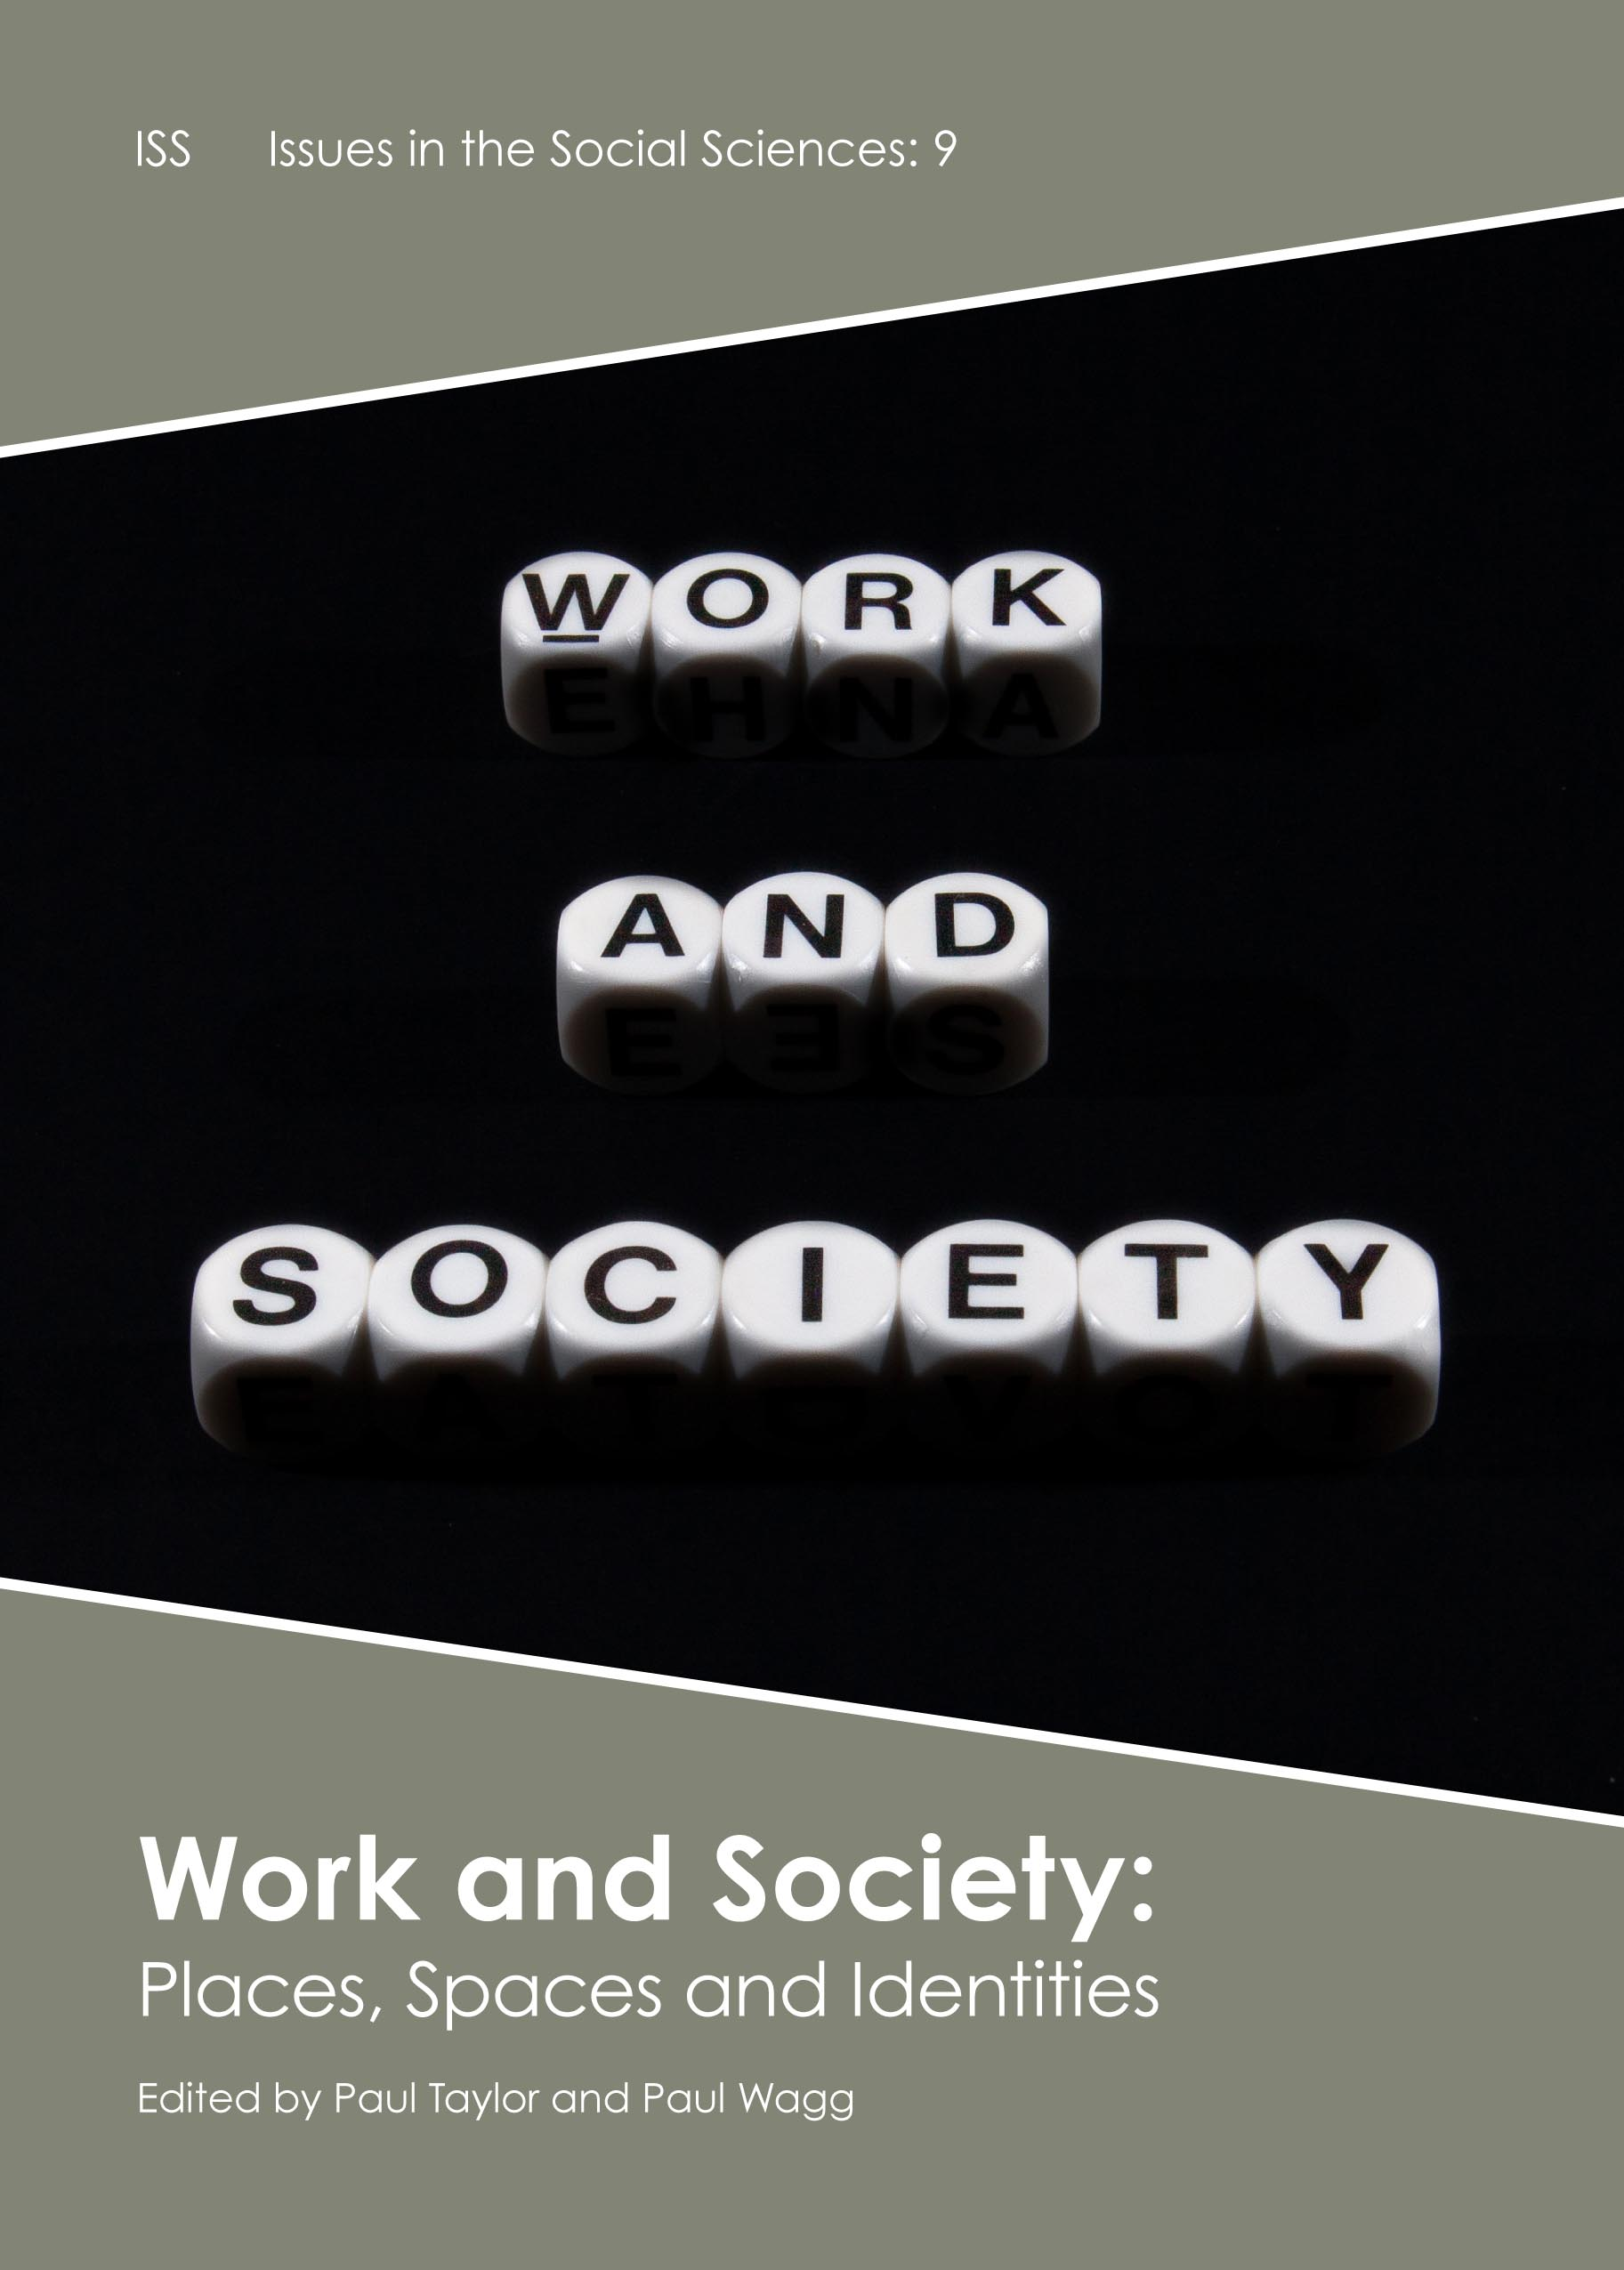 Work and Society: Places, Spaces and Identities